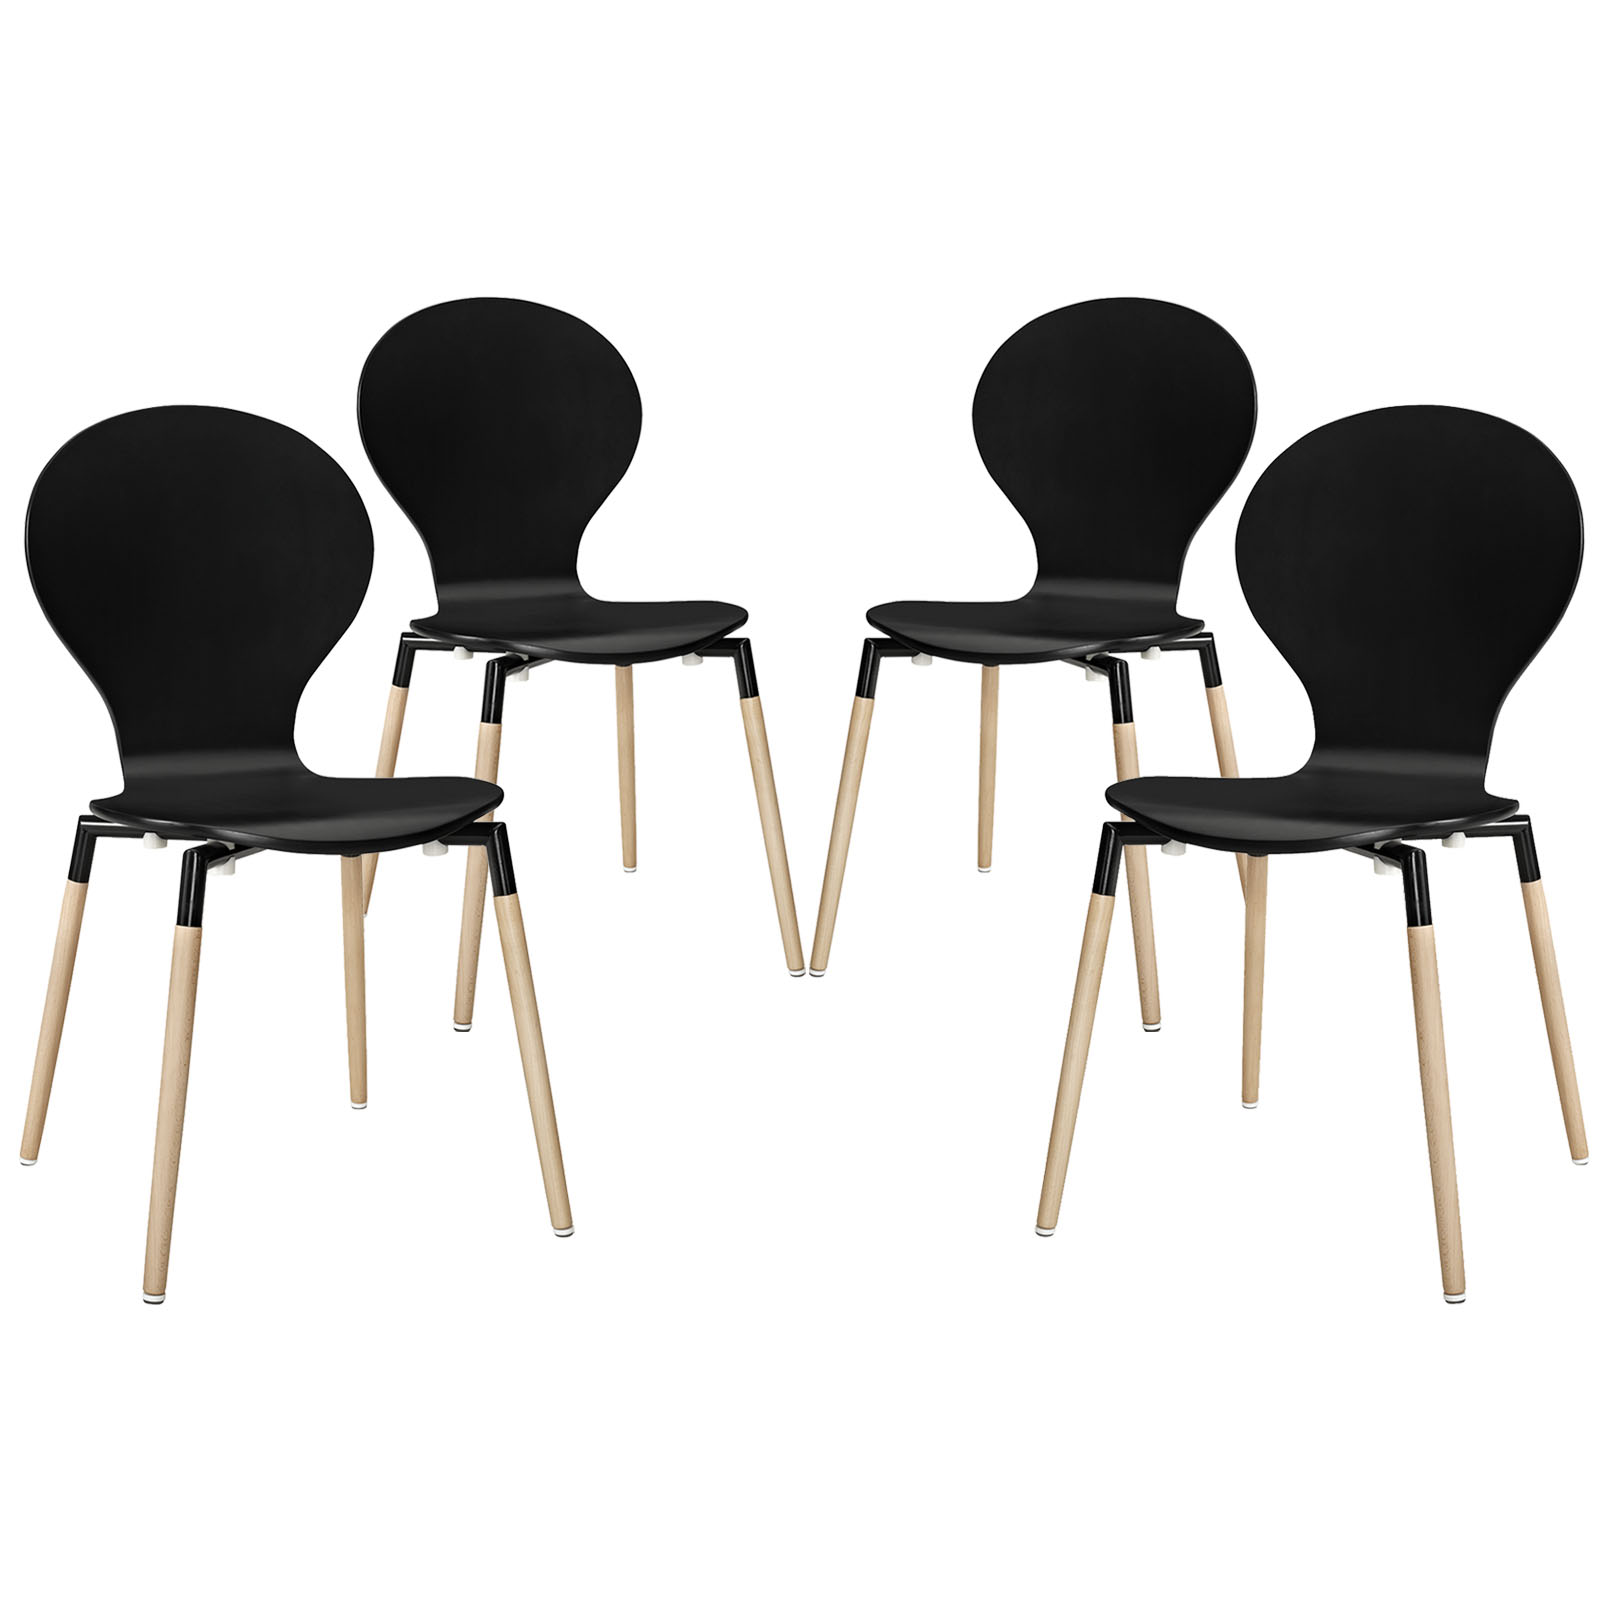 Modern Contemporary Kitchen Wood Dining Chair Set of Four Black